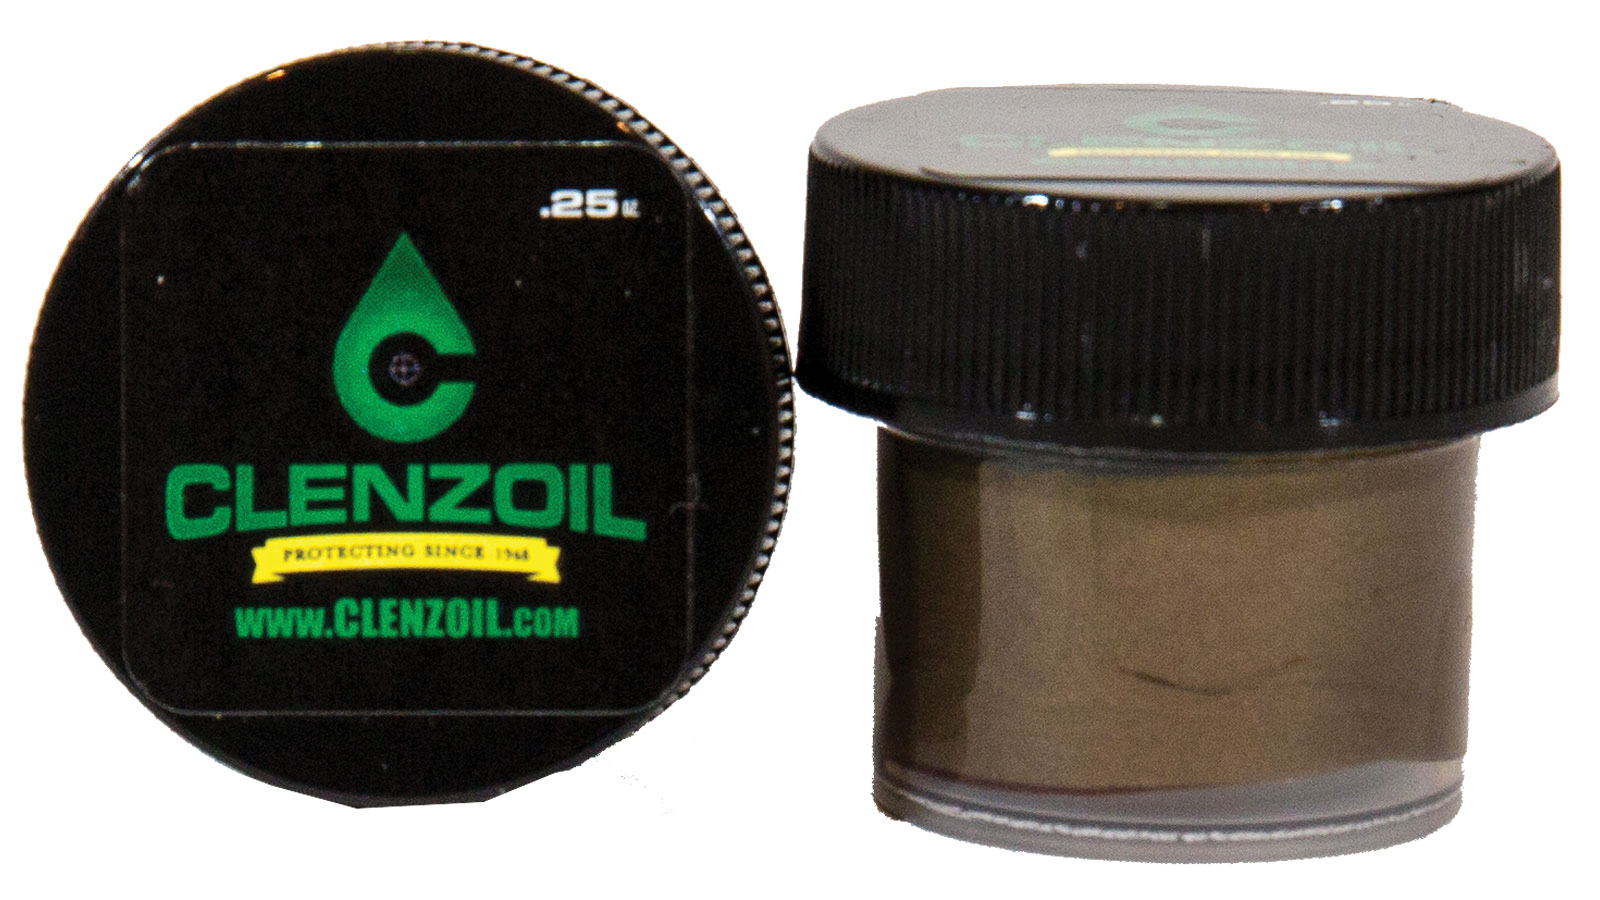 Clenzoil HINGE PIN JELLY .25OZ